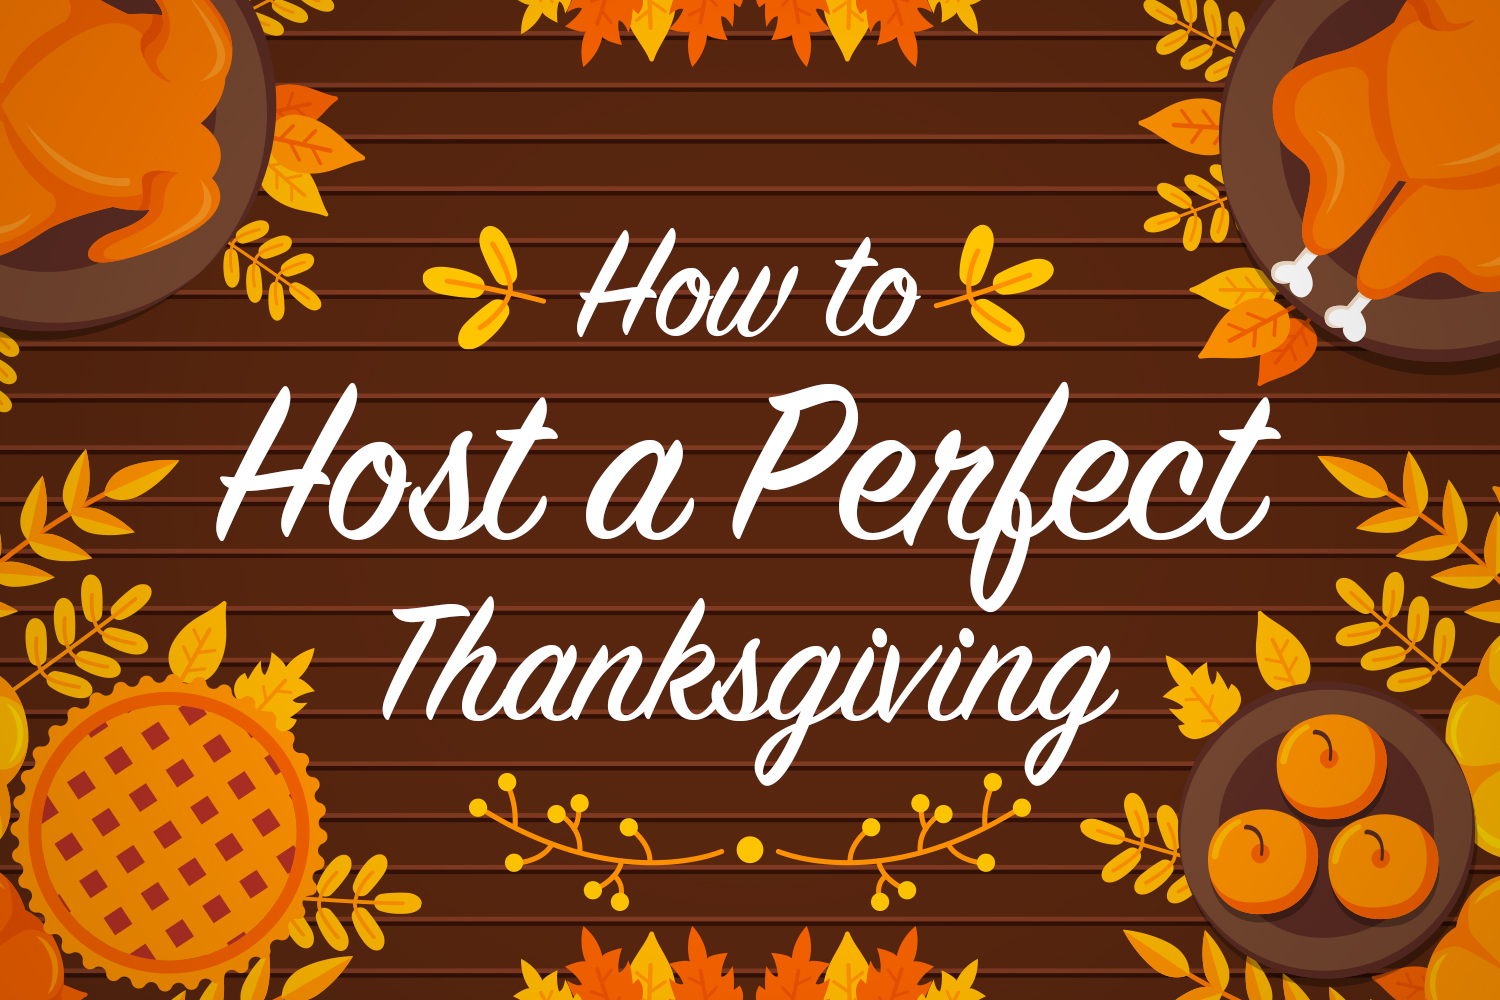 How to Host a Perfect Thanksgiving